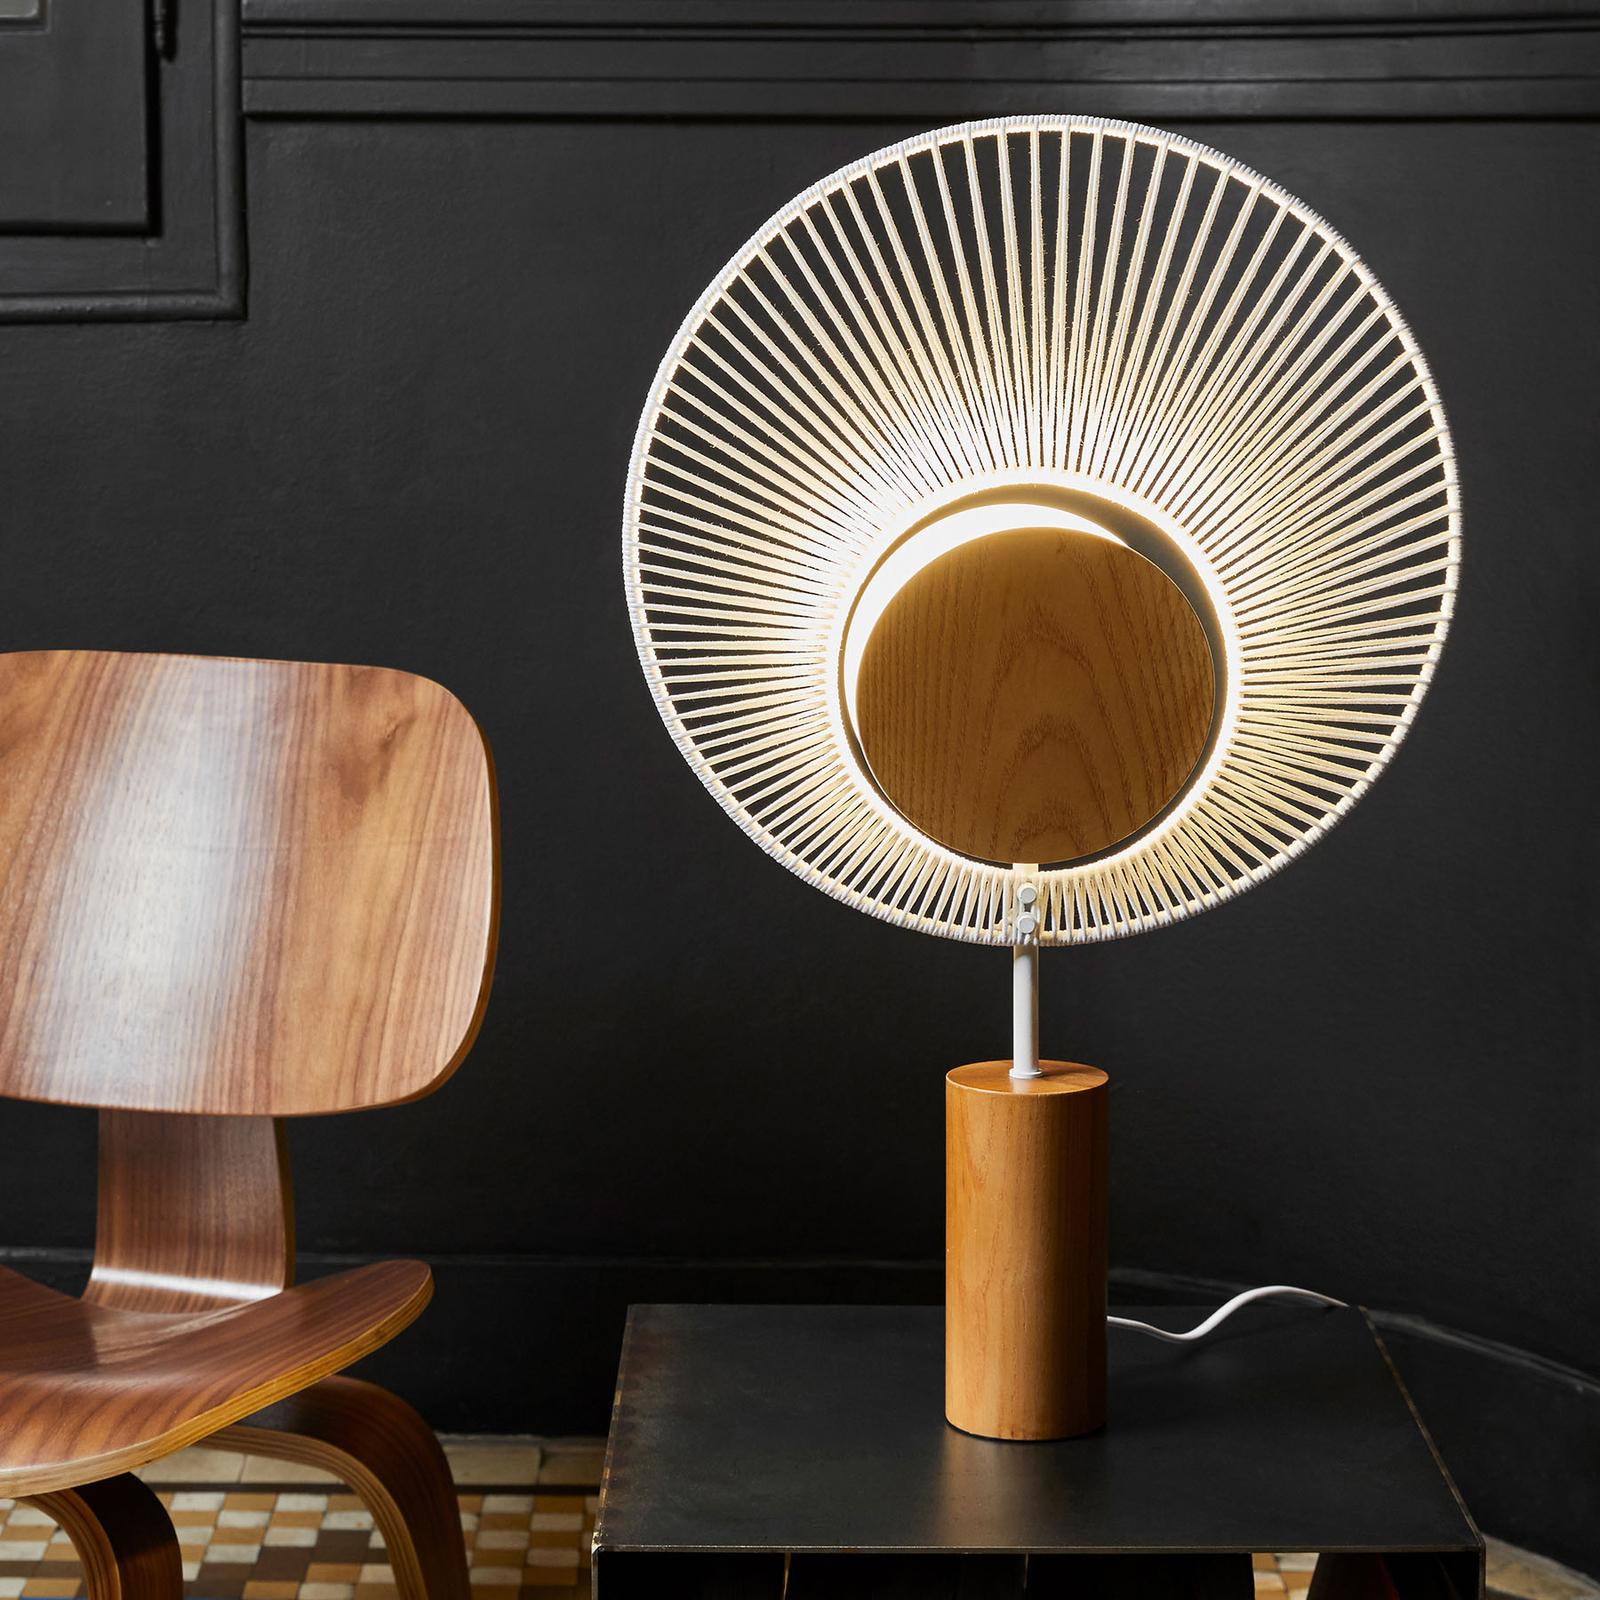 Forestier Oyster designer table lamp_3567057_1